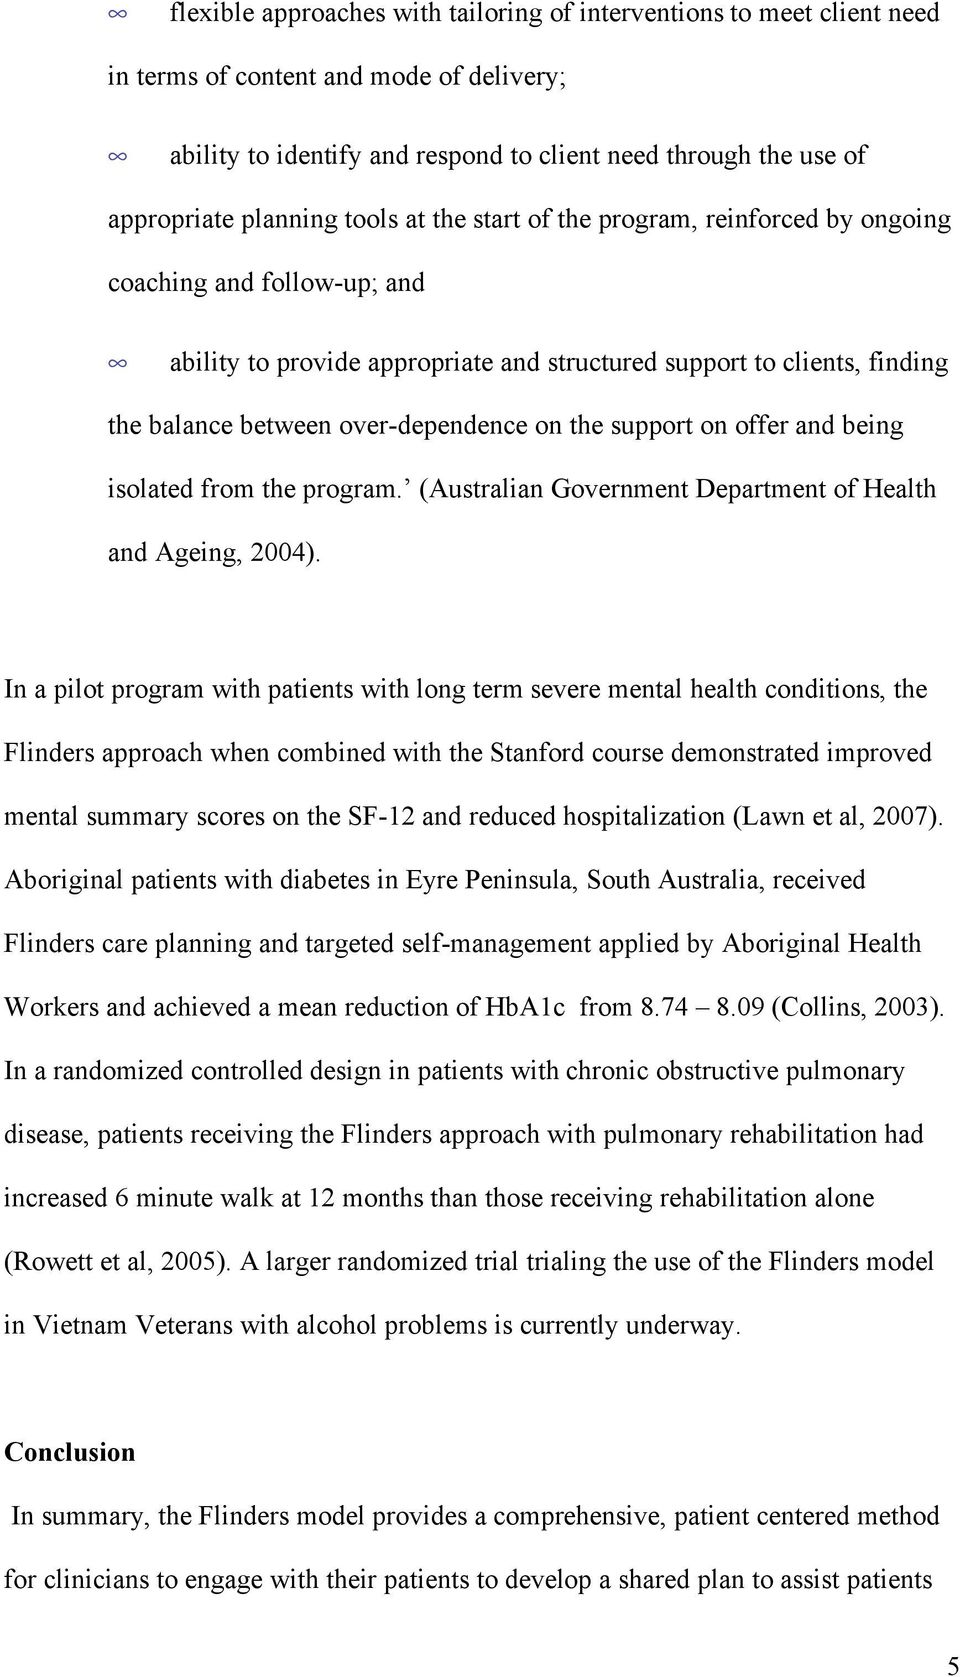 over-dependence on the support on offer and being isolated from the program. (Australian Government Department of Health and Ageing, 2004).